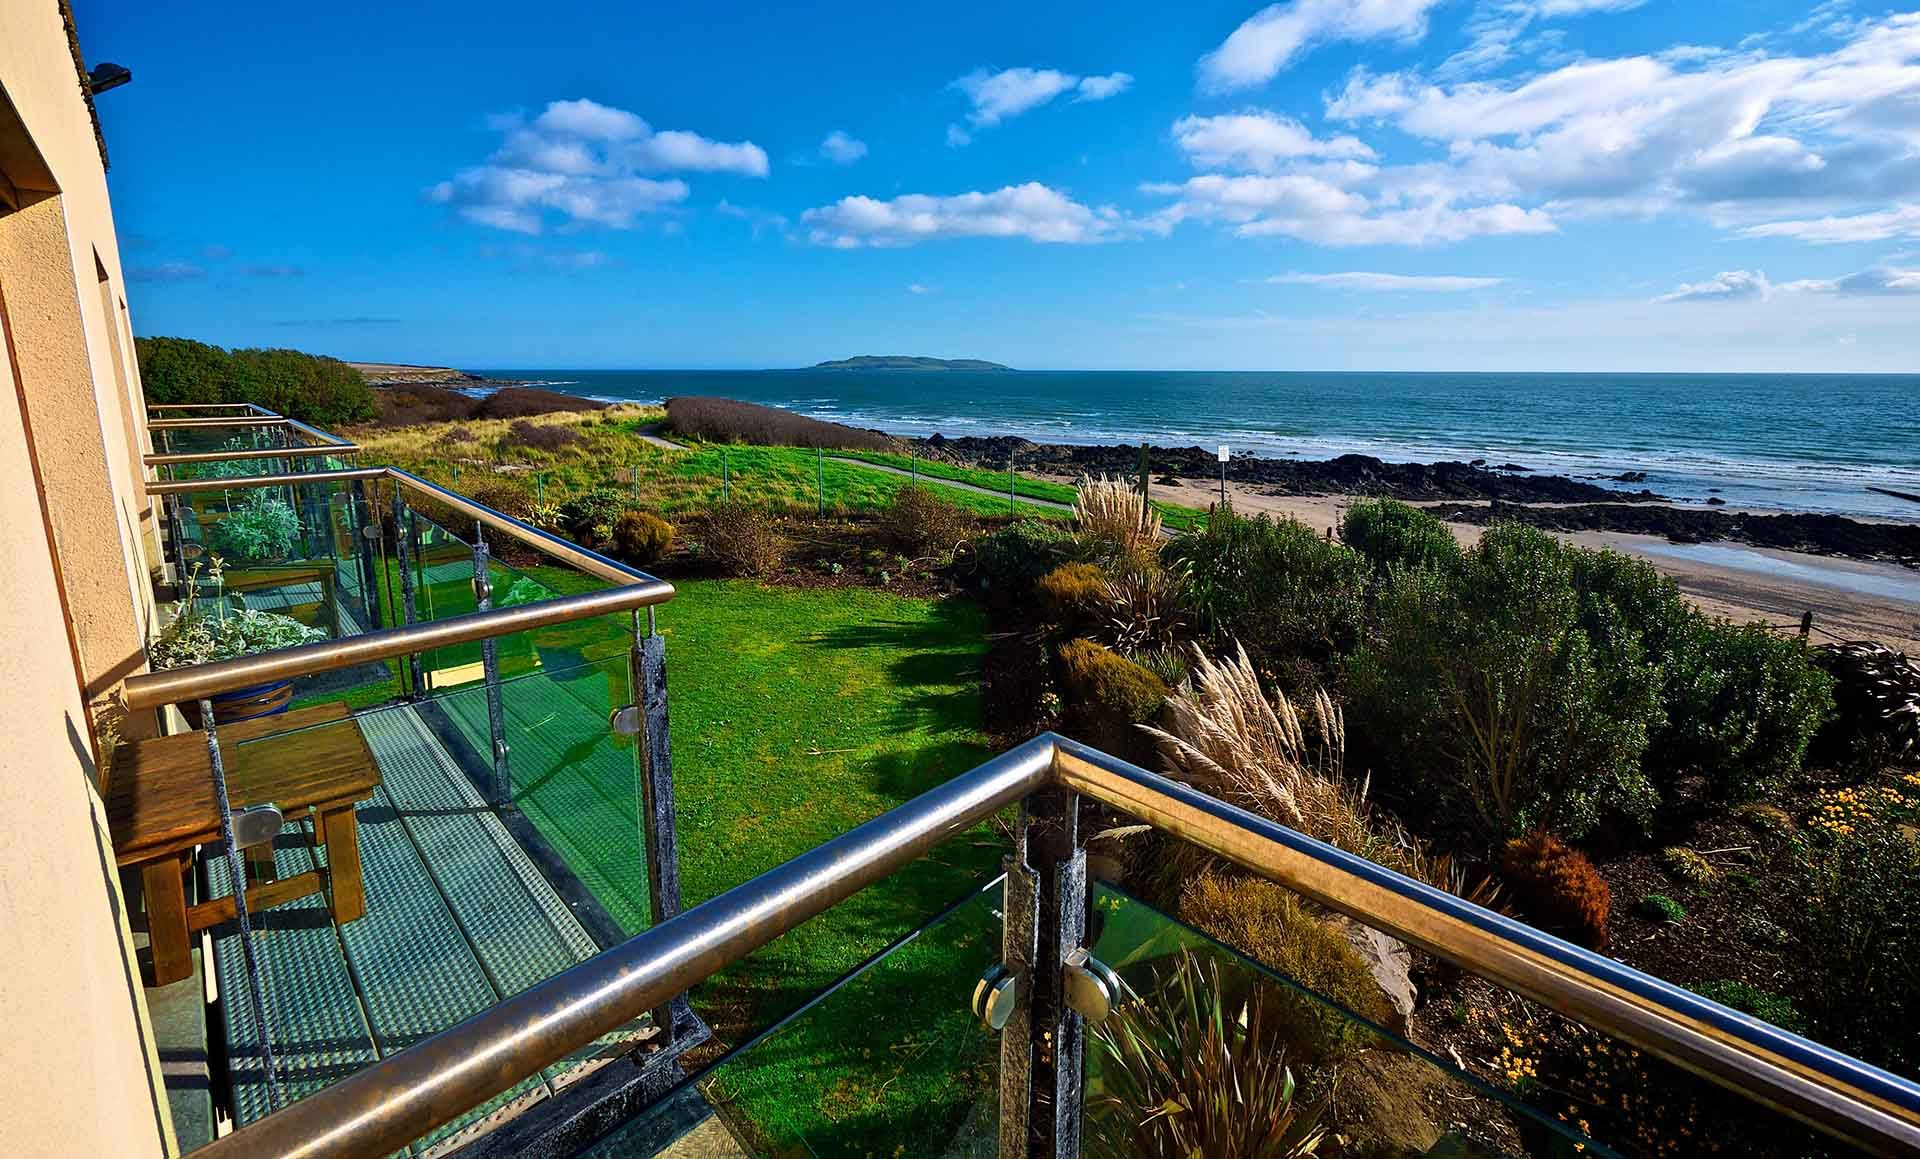 The Waterside House Hotel In Dublin Is Located Right On Beach Donabate With Stunning Views Of Lambay Island